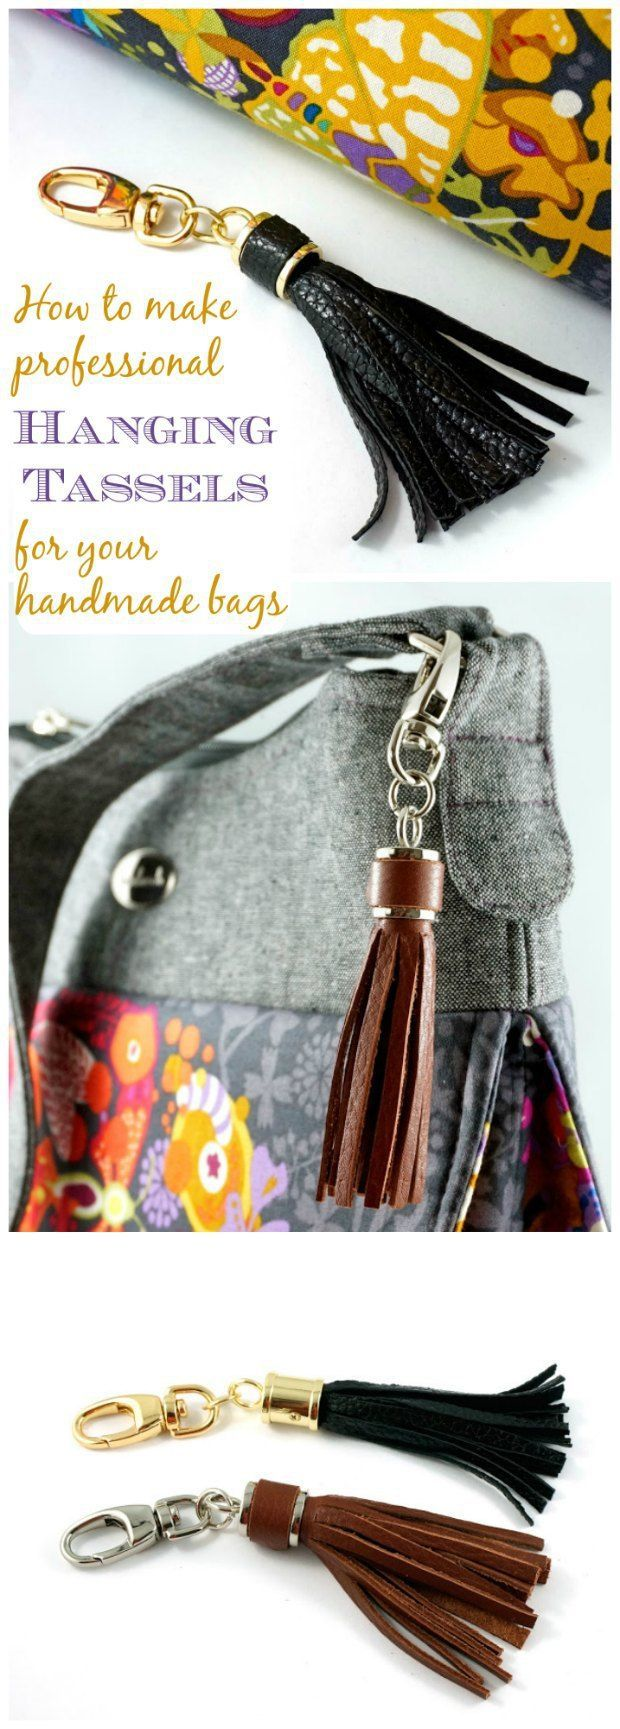 581 best Purse and handbag patterns to sew images on Pinterest | Sew ...